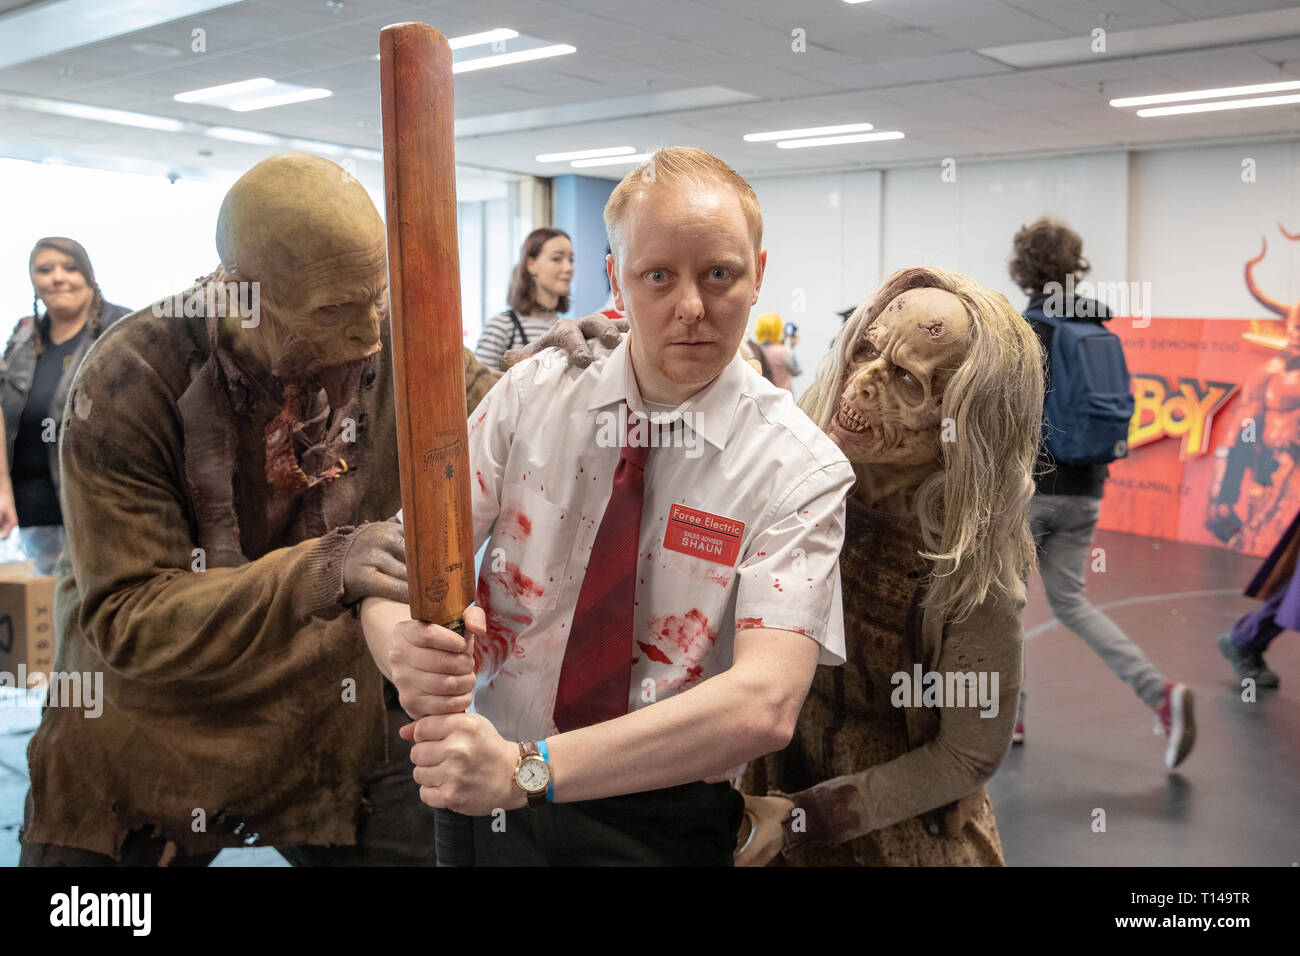 Birmingham, UK. Saturday 23 March 2019. Cosplayers seen in character as Shaun of the Dead on the 1st day of the MCM Comic Con Birmingham at the NEC  , © Jason Richardson / Alamy Live News - Stock Image